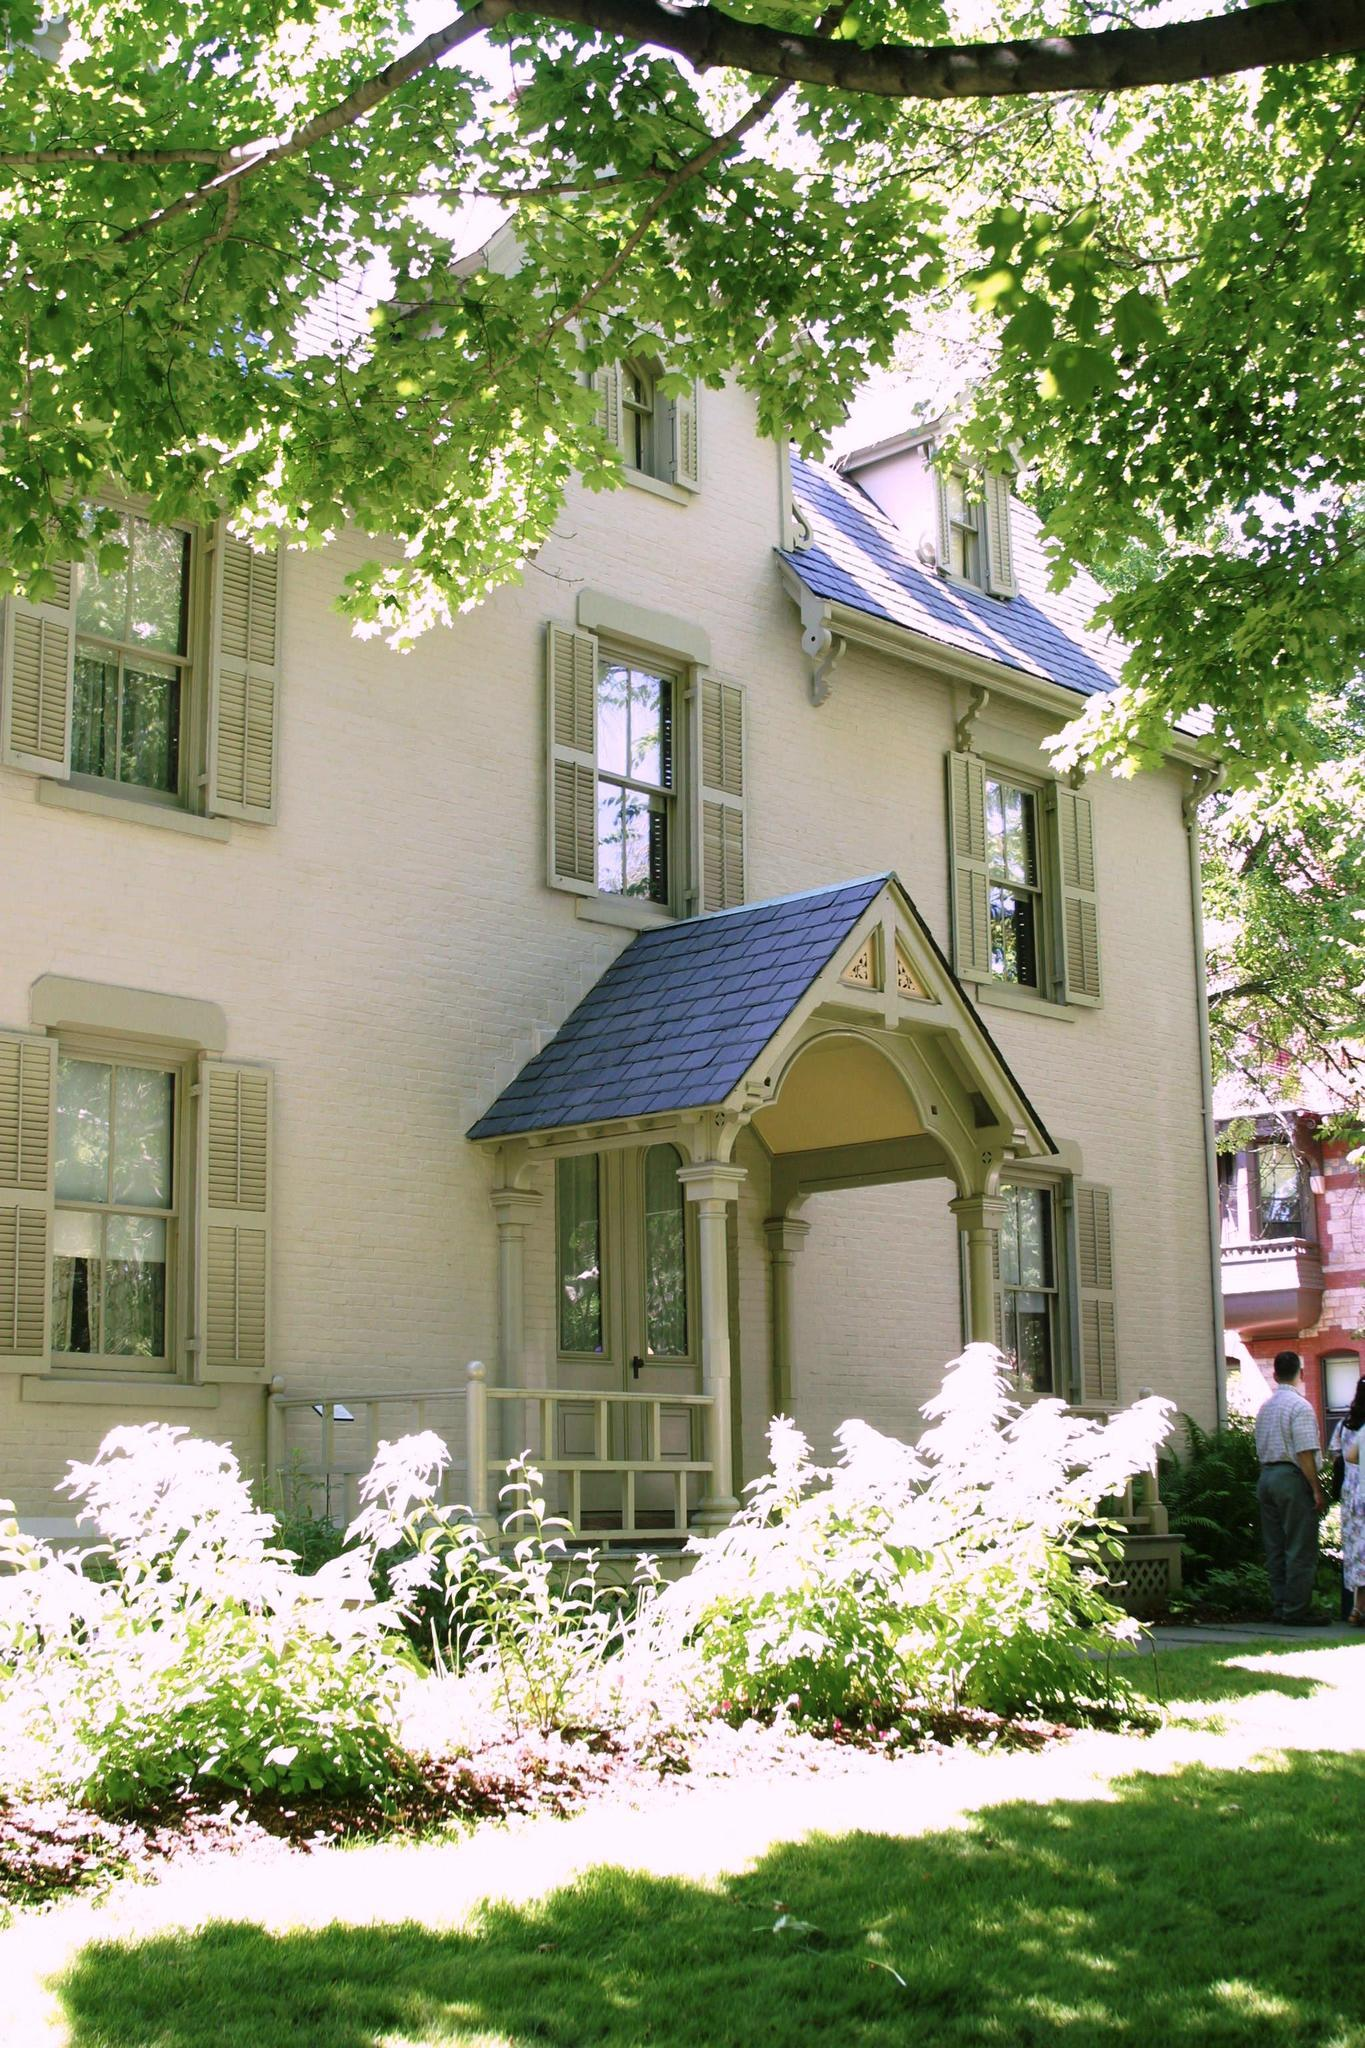 The Harriet Beecher Stowe Center offers free Saturday tours for Hartford residents.